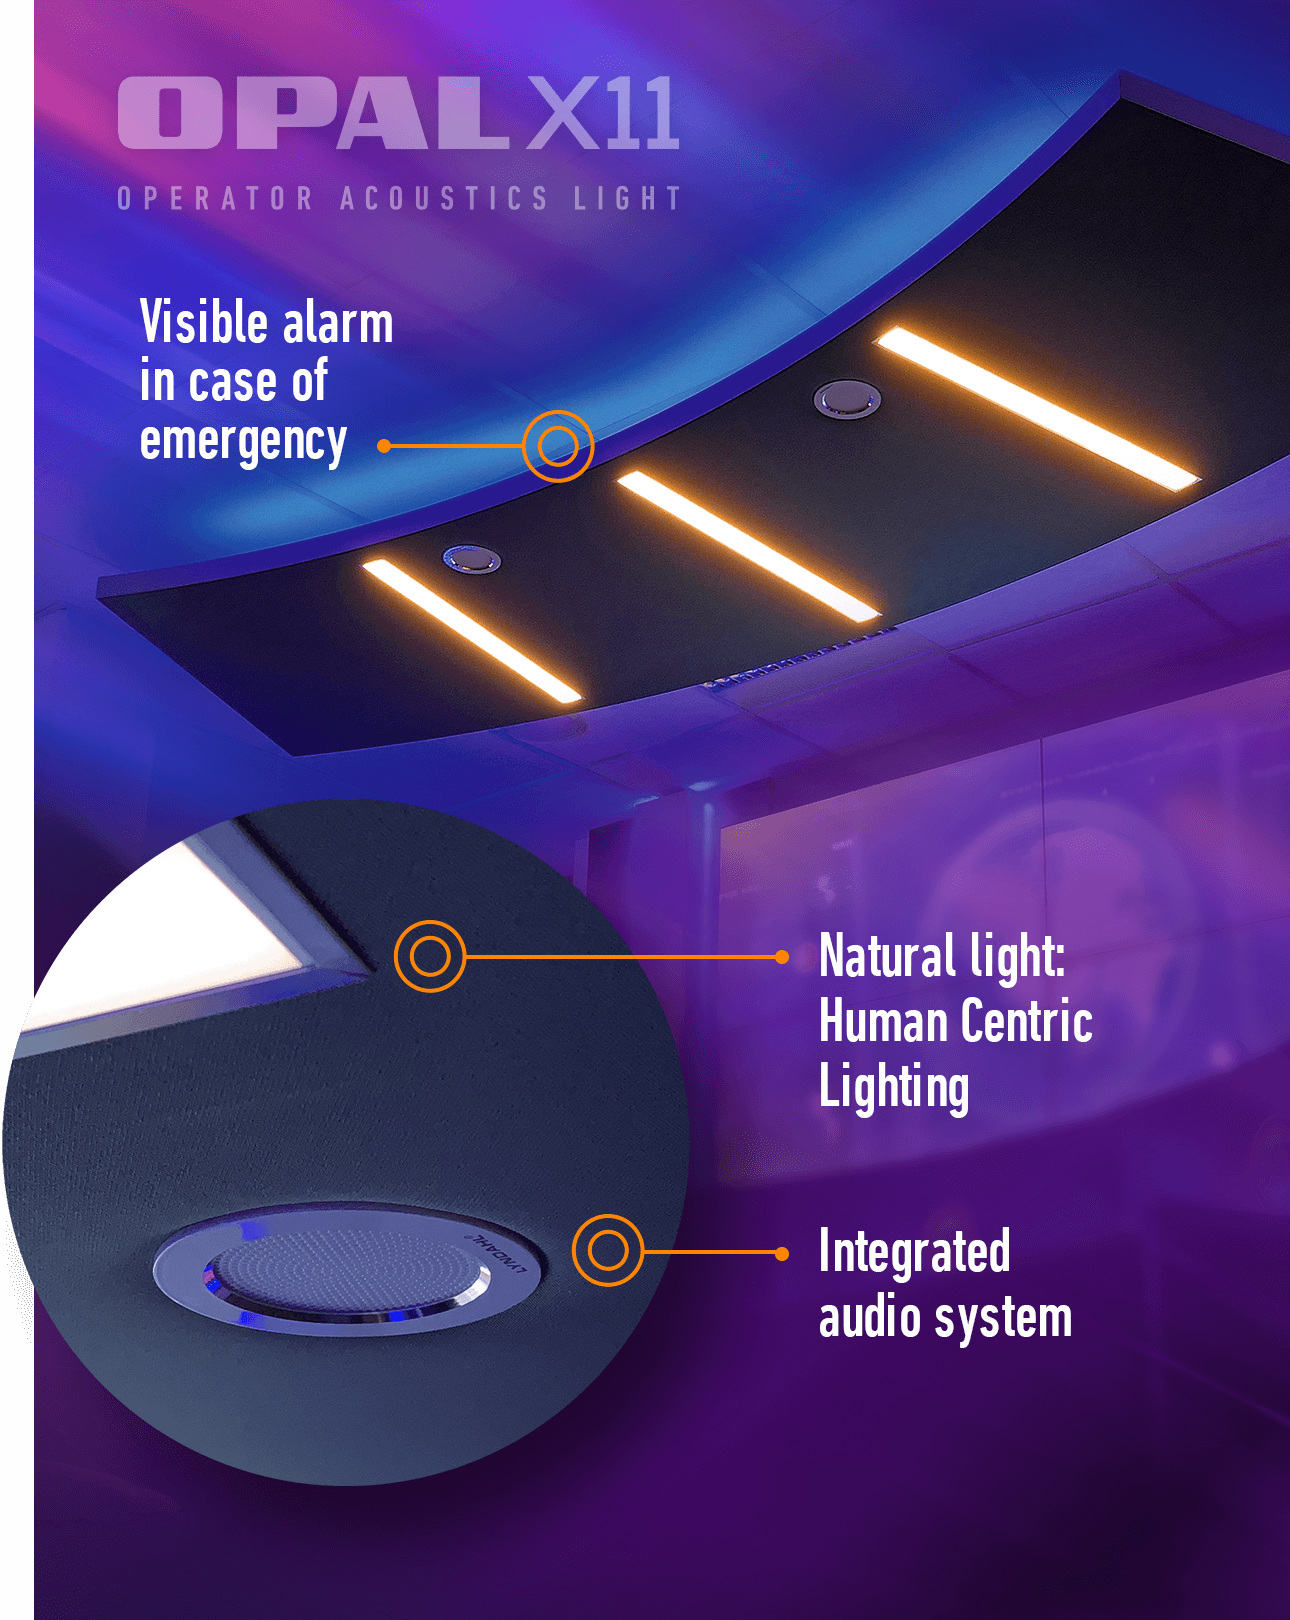 OPAL X11 – Acoustic ceiling sail for your control room